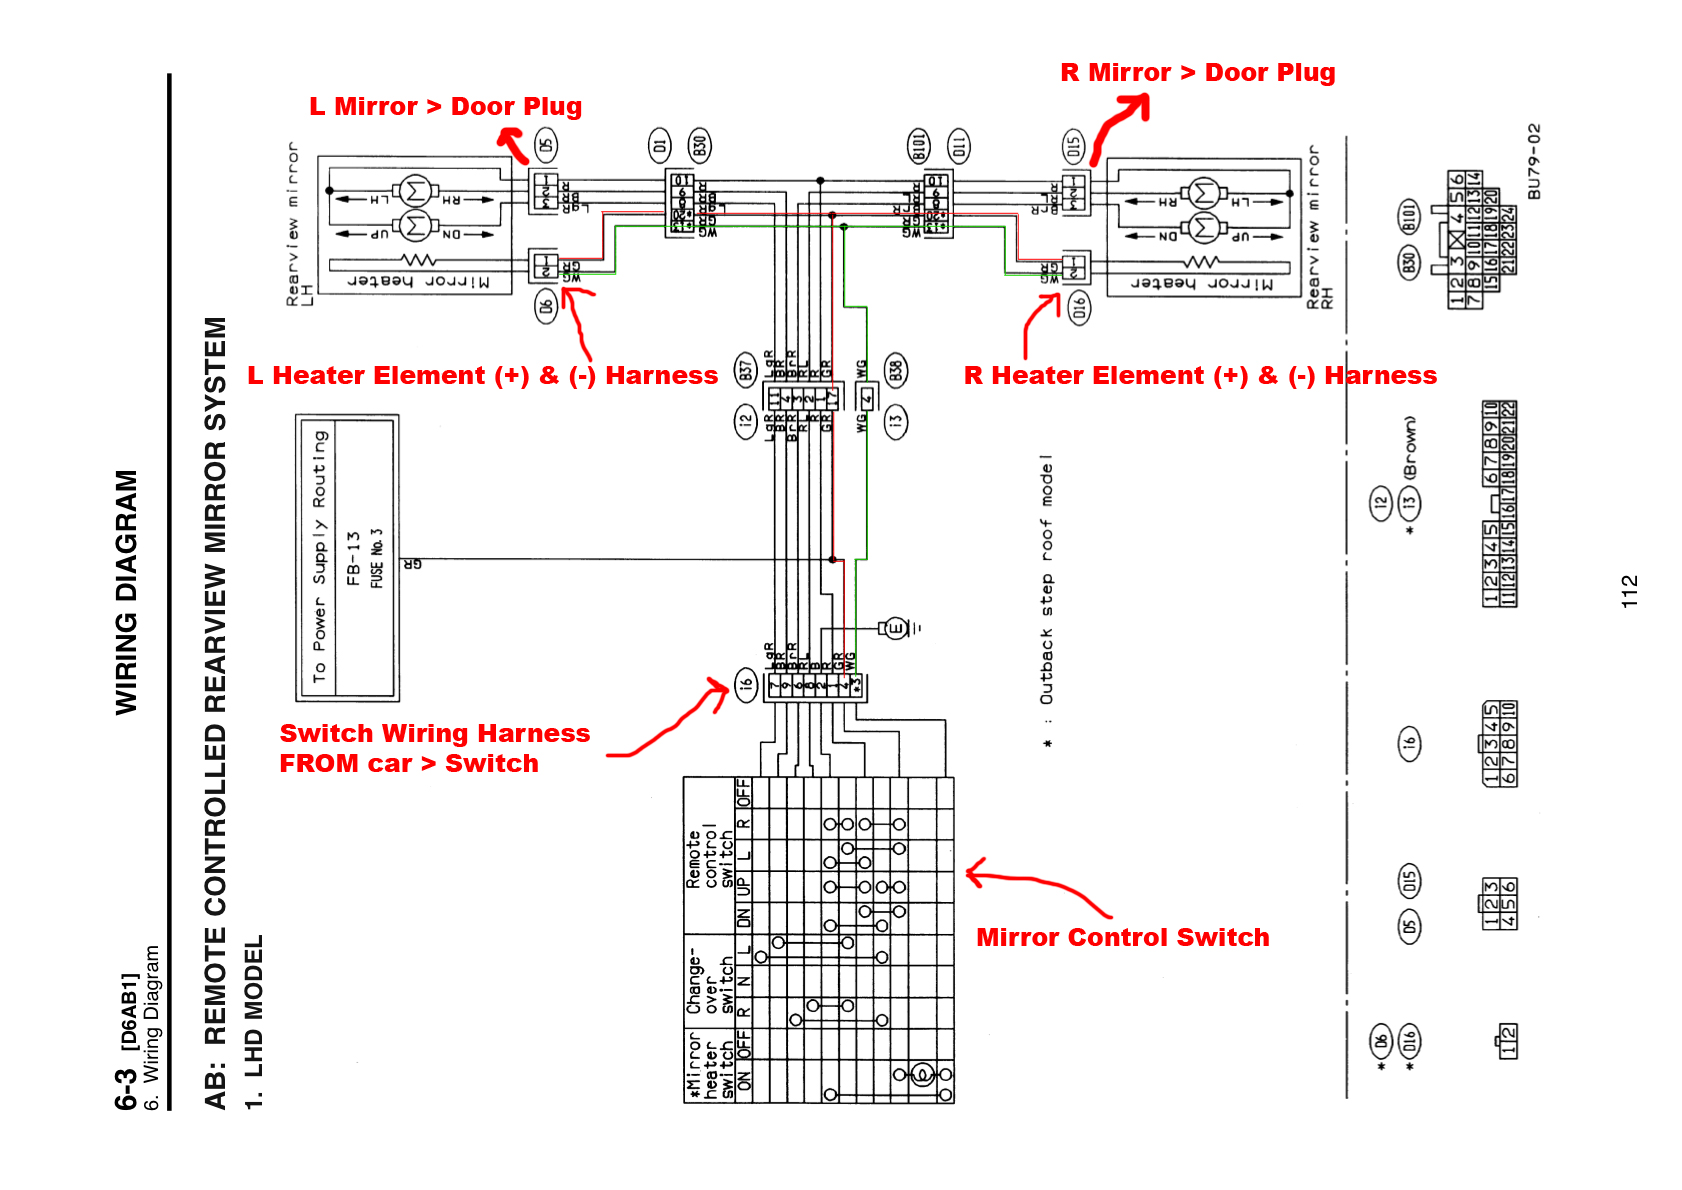 Subwoofer Wiring Diagram 2002 Wrx Example Electrical Subaru 2003 Outback Radio 1 Ohm 4